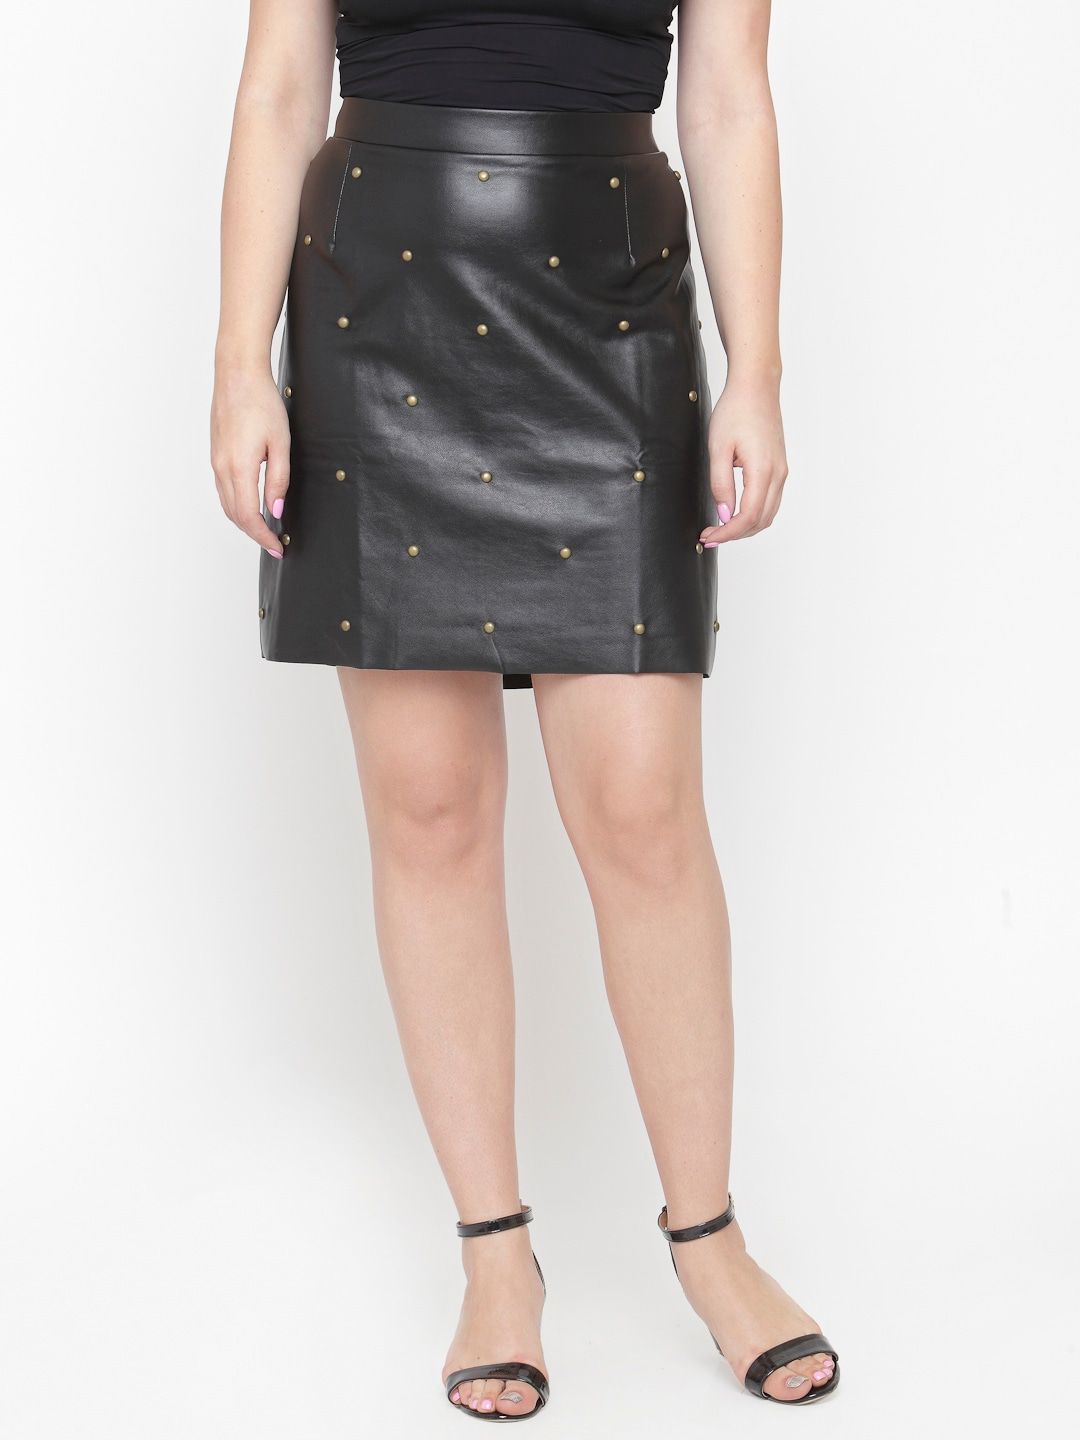 Black Faux Leather Studded Pencil Skirt for women of plus size